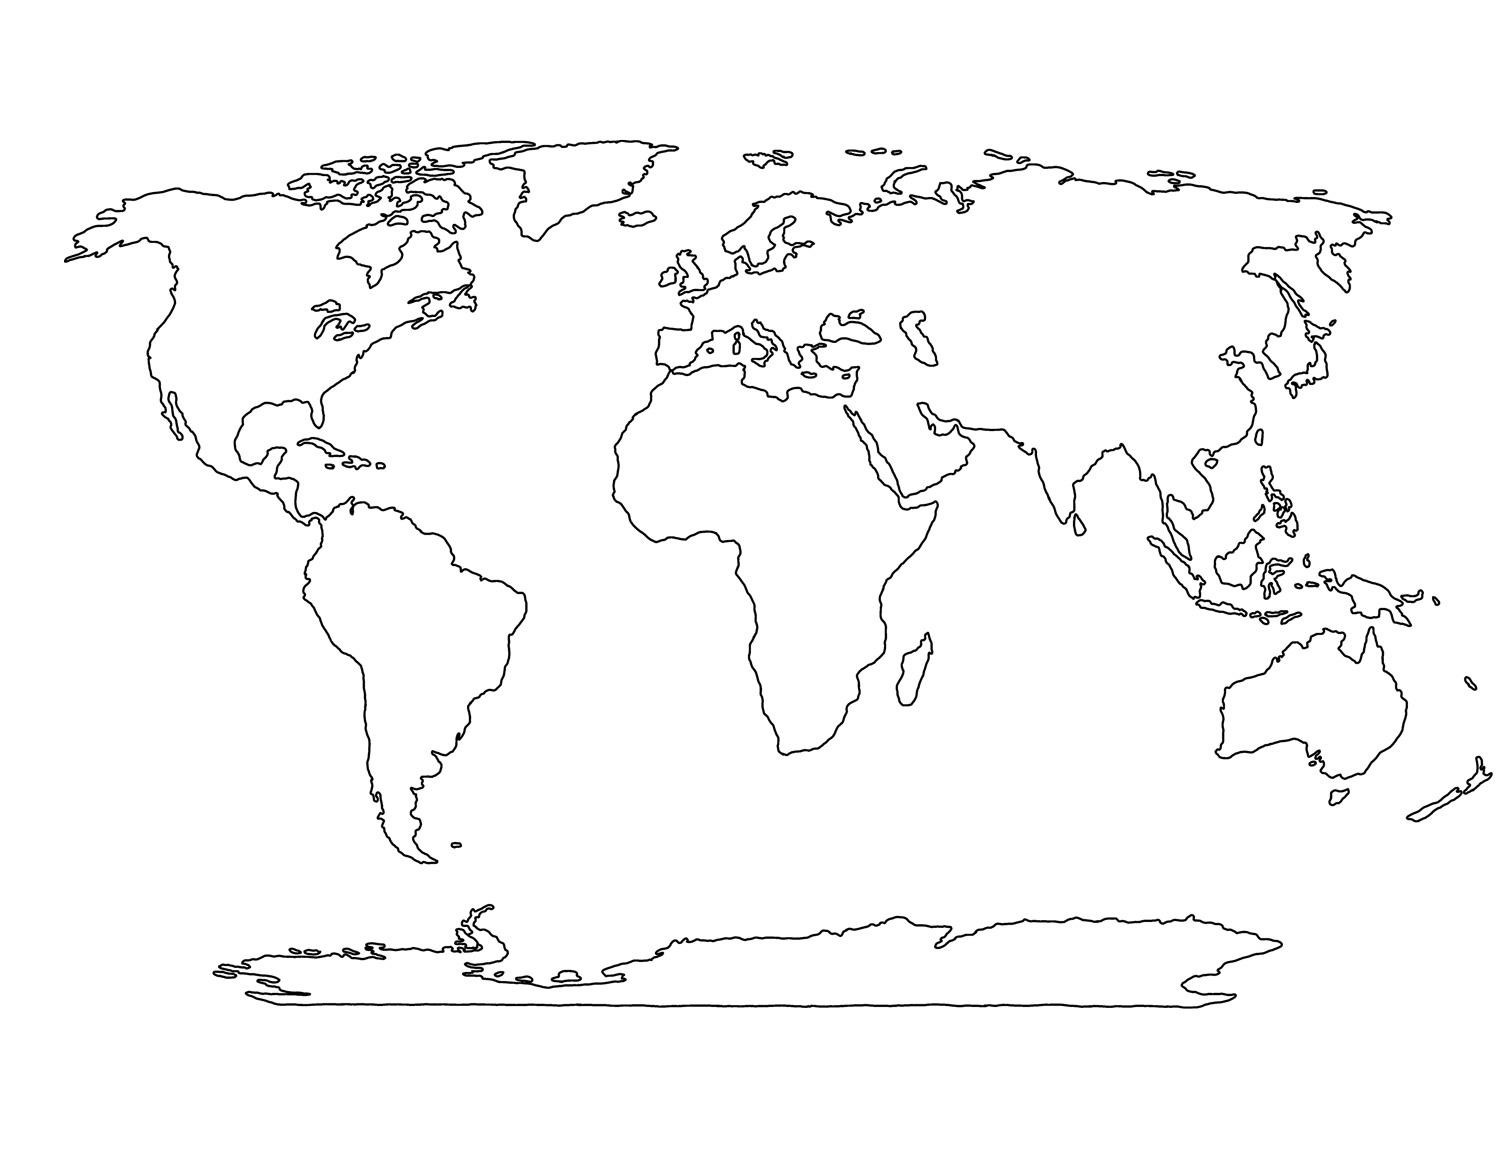 World map drawing tumblr at getdrawings free for personal use 1500x1159 blank world mapg gumiabroncs Image collections